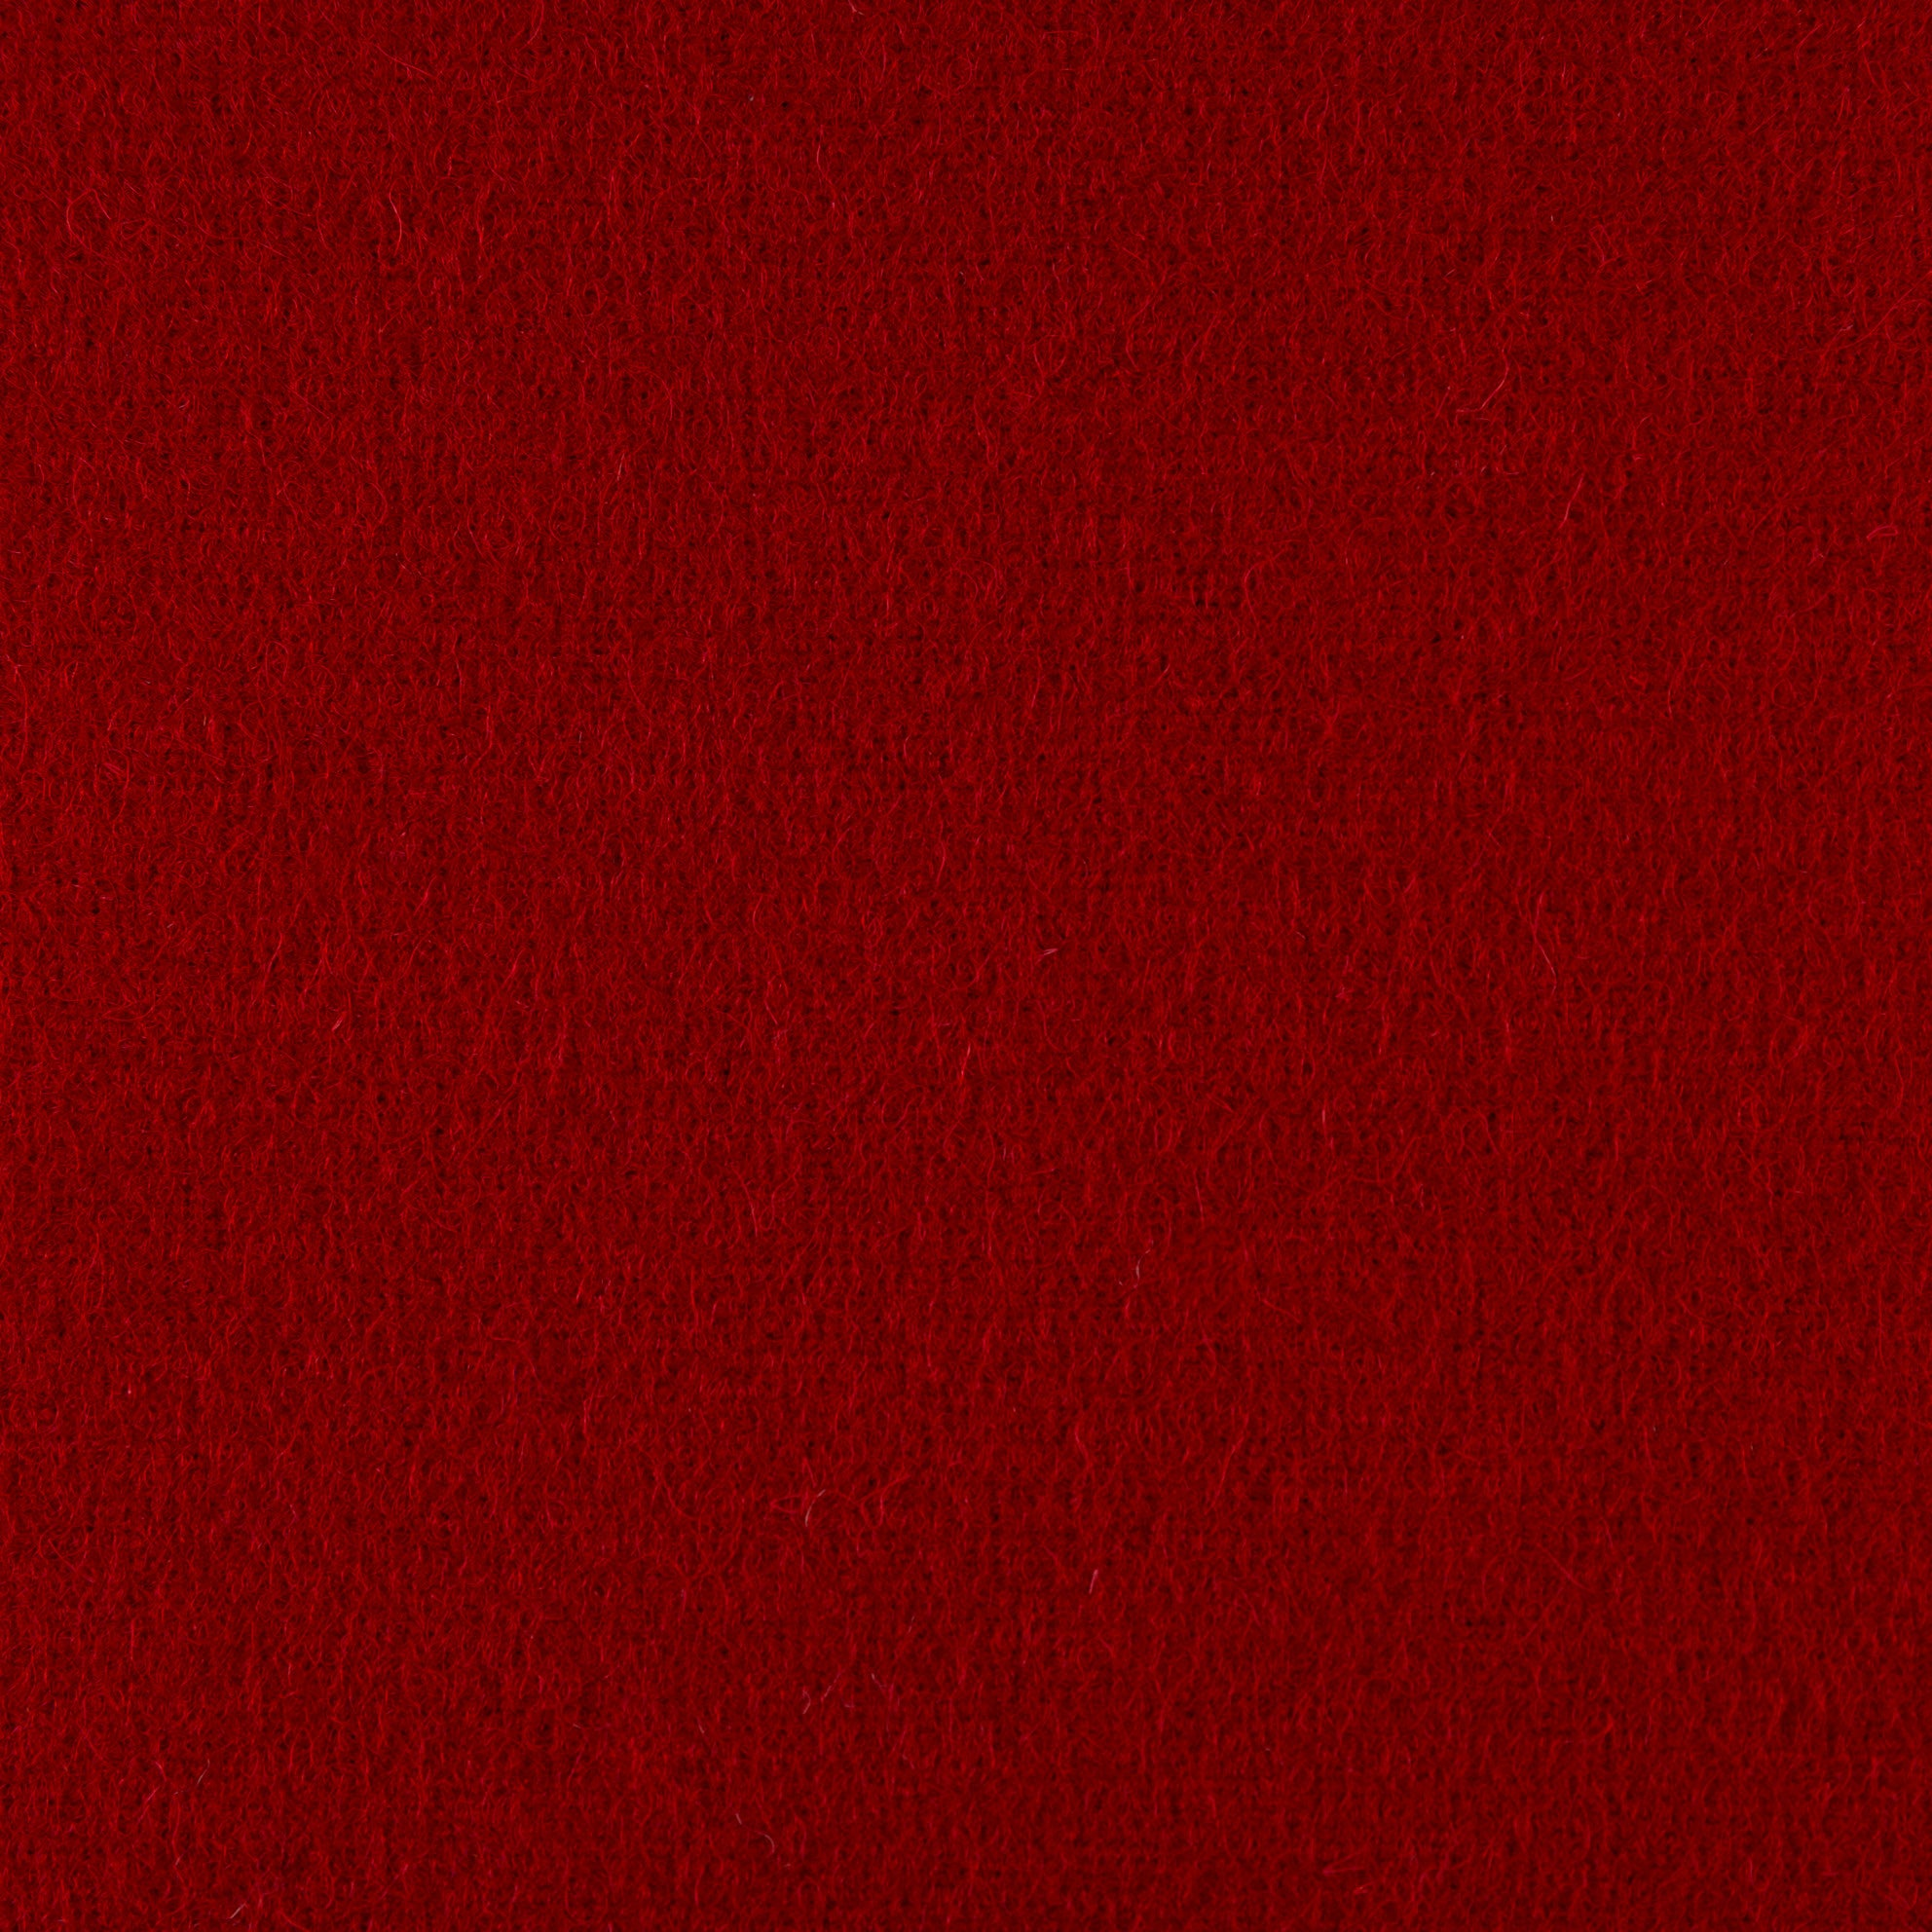 Woven Plain Fabric - Dawlish 19/038 Red Oxide